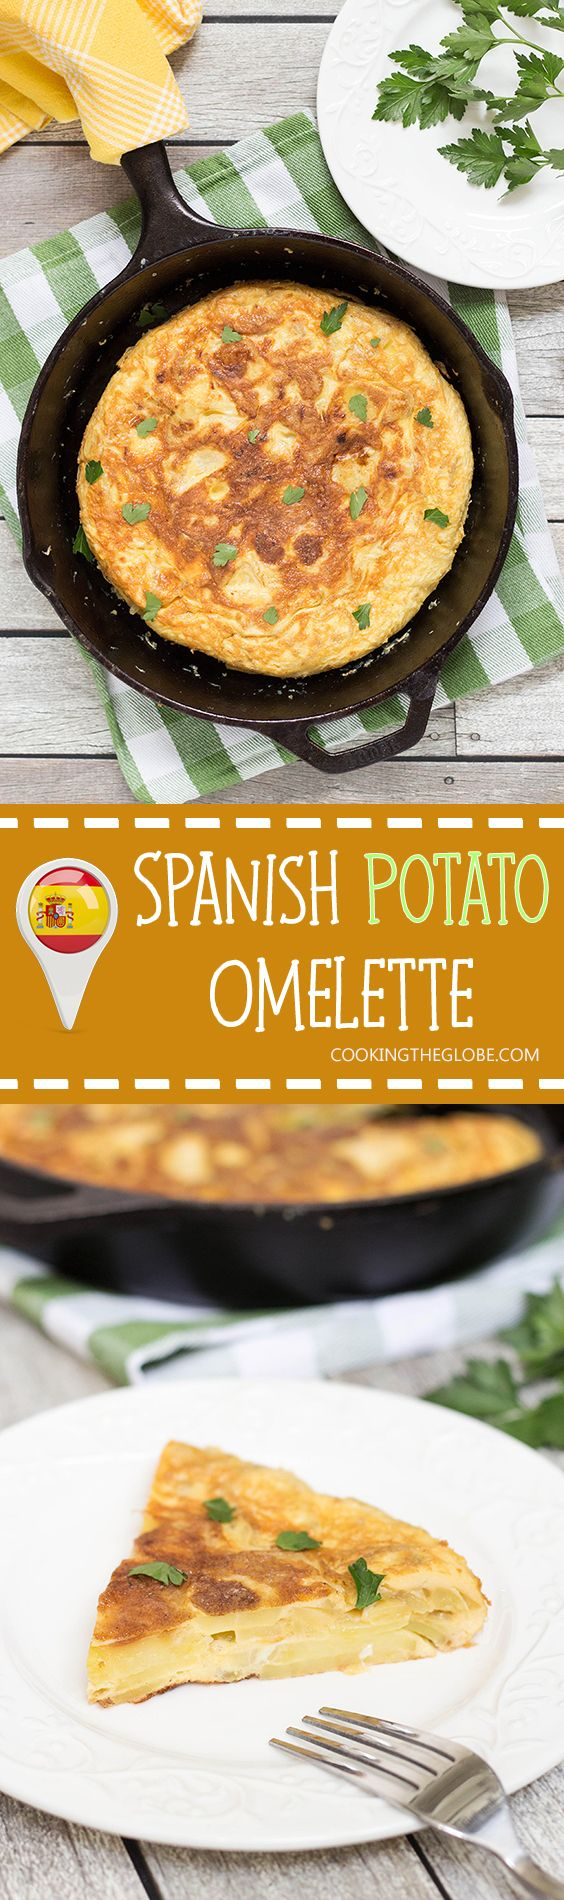 The famous Spanish Omelette (Tortilla) requires only few simple ingredients (eggs, potatoes, onion) and is so delicious!